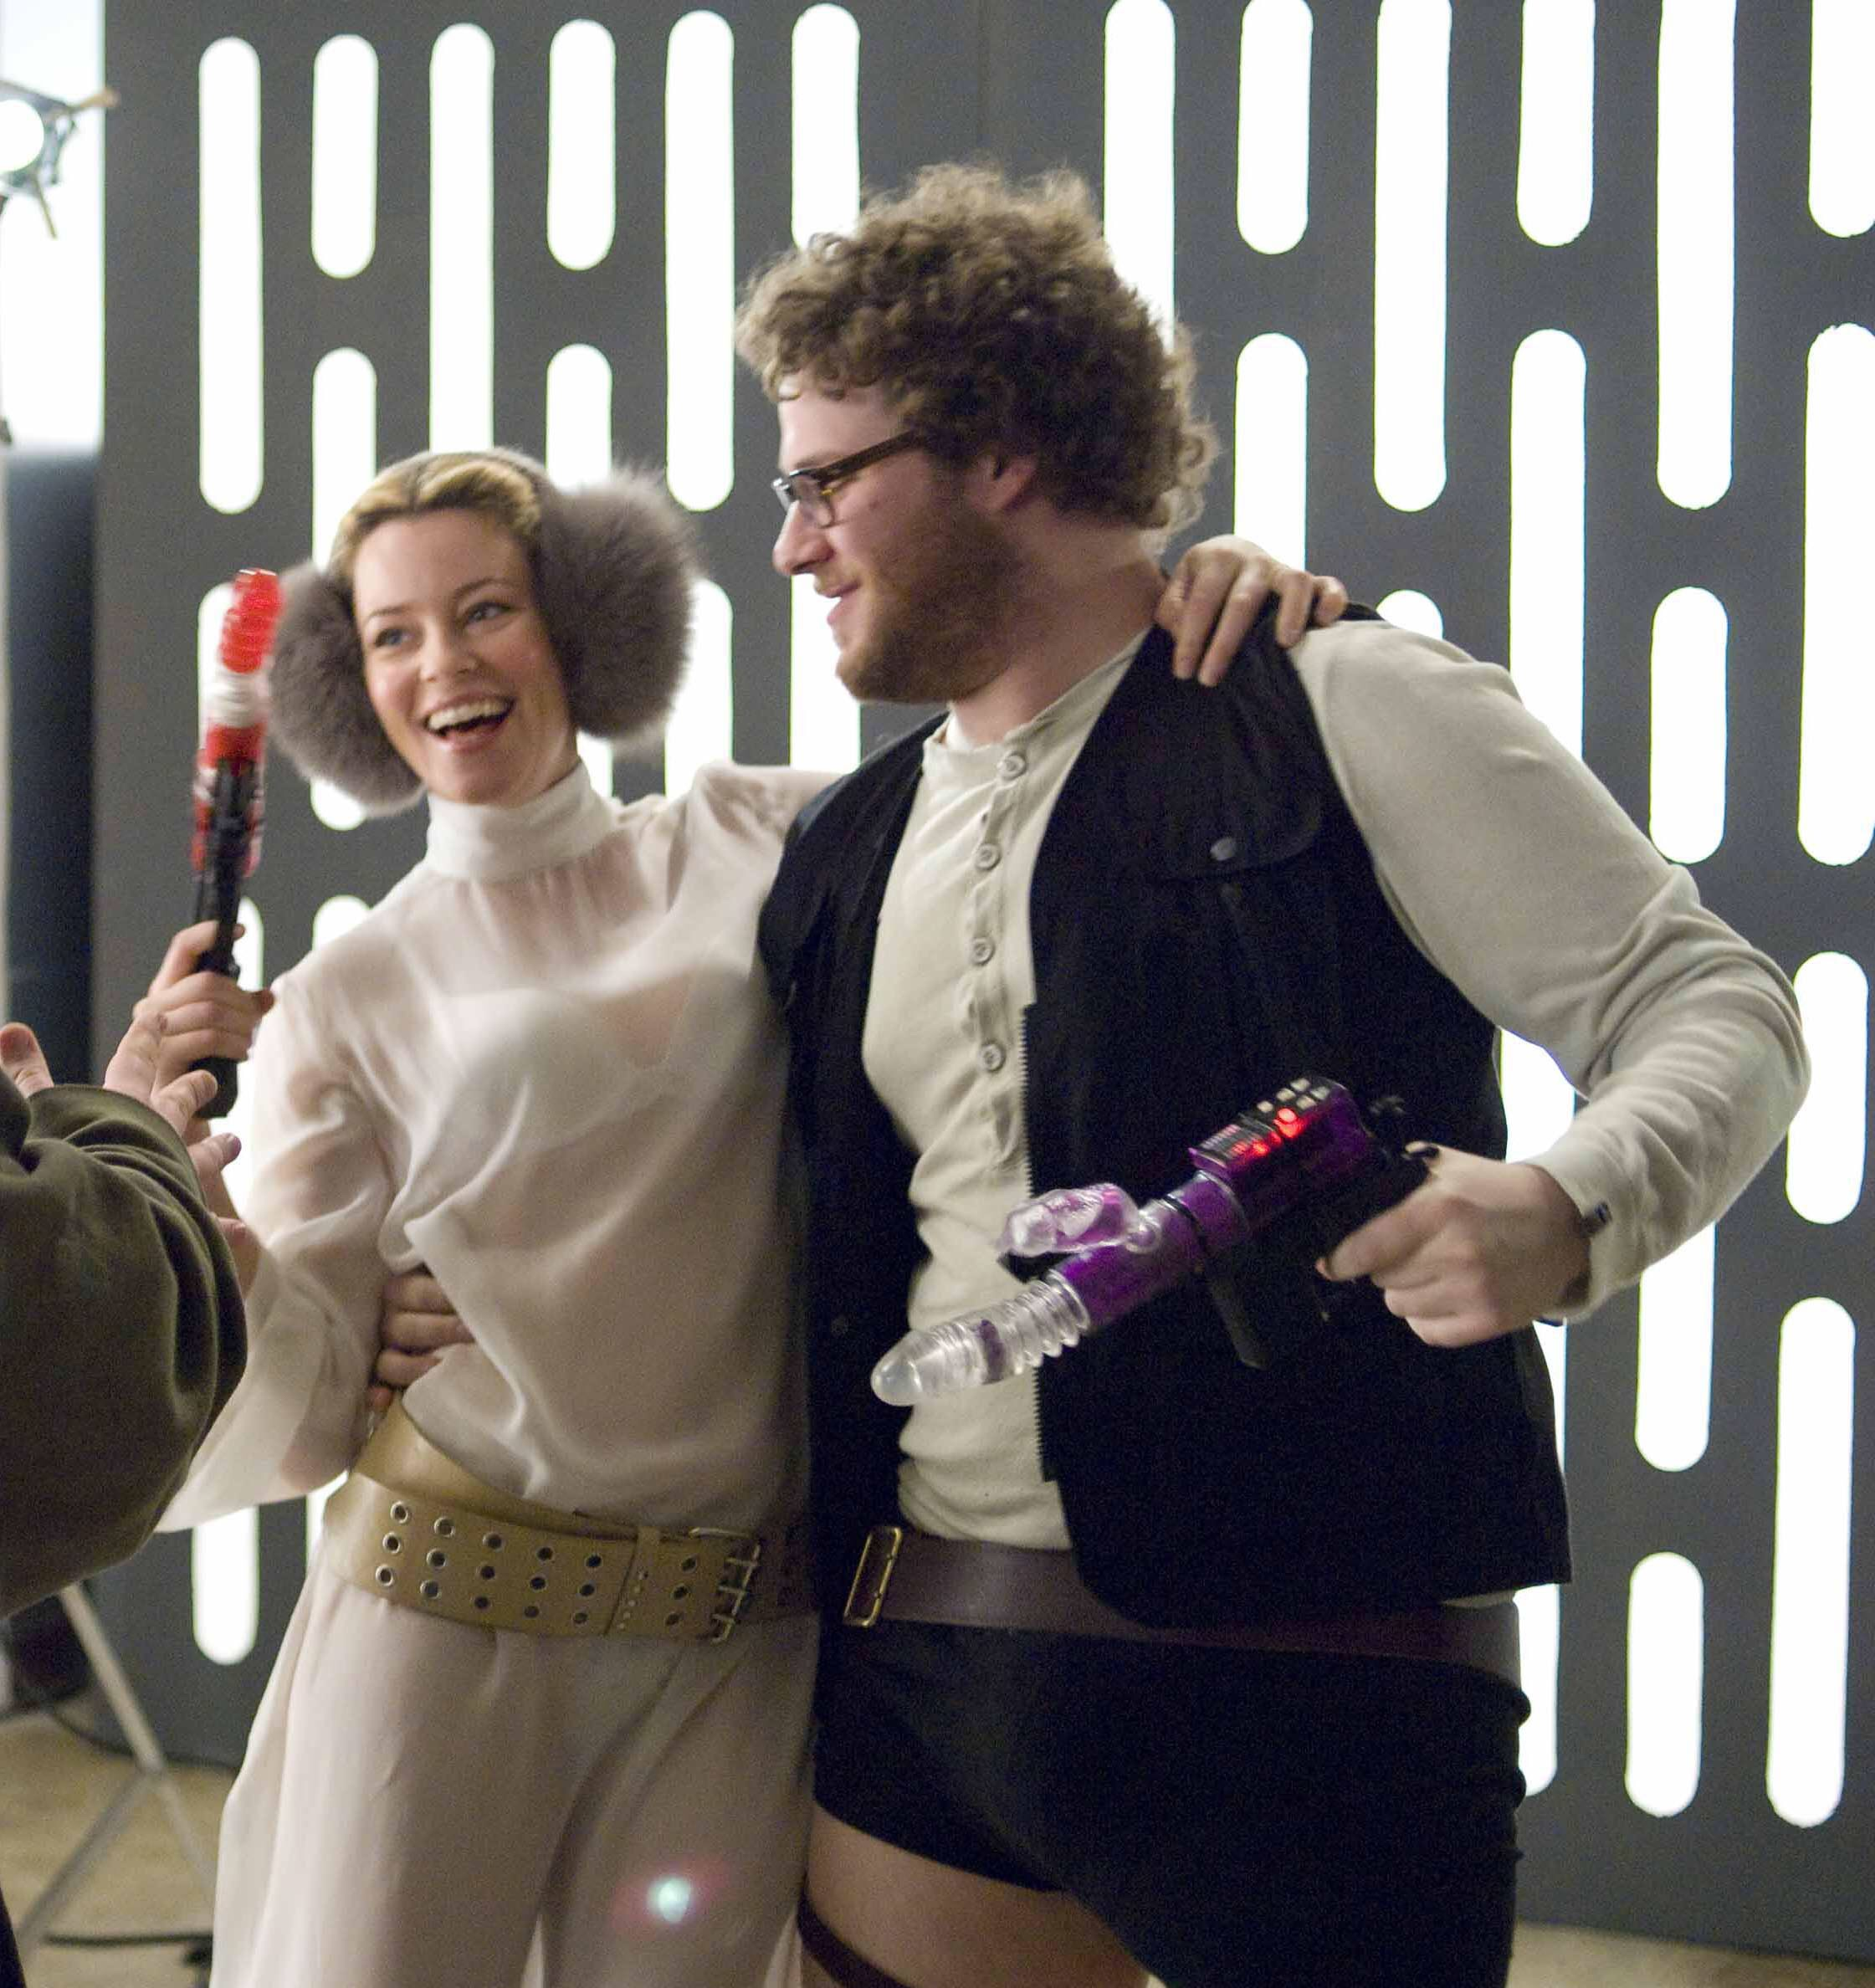 Zack and Miri are dressed as Princess Leia and Han Solo. They are embracing and holding fake weapons decorated with sex toys